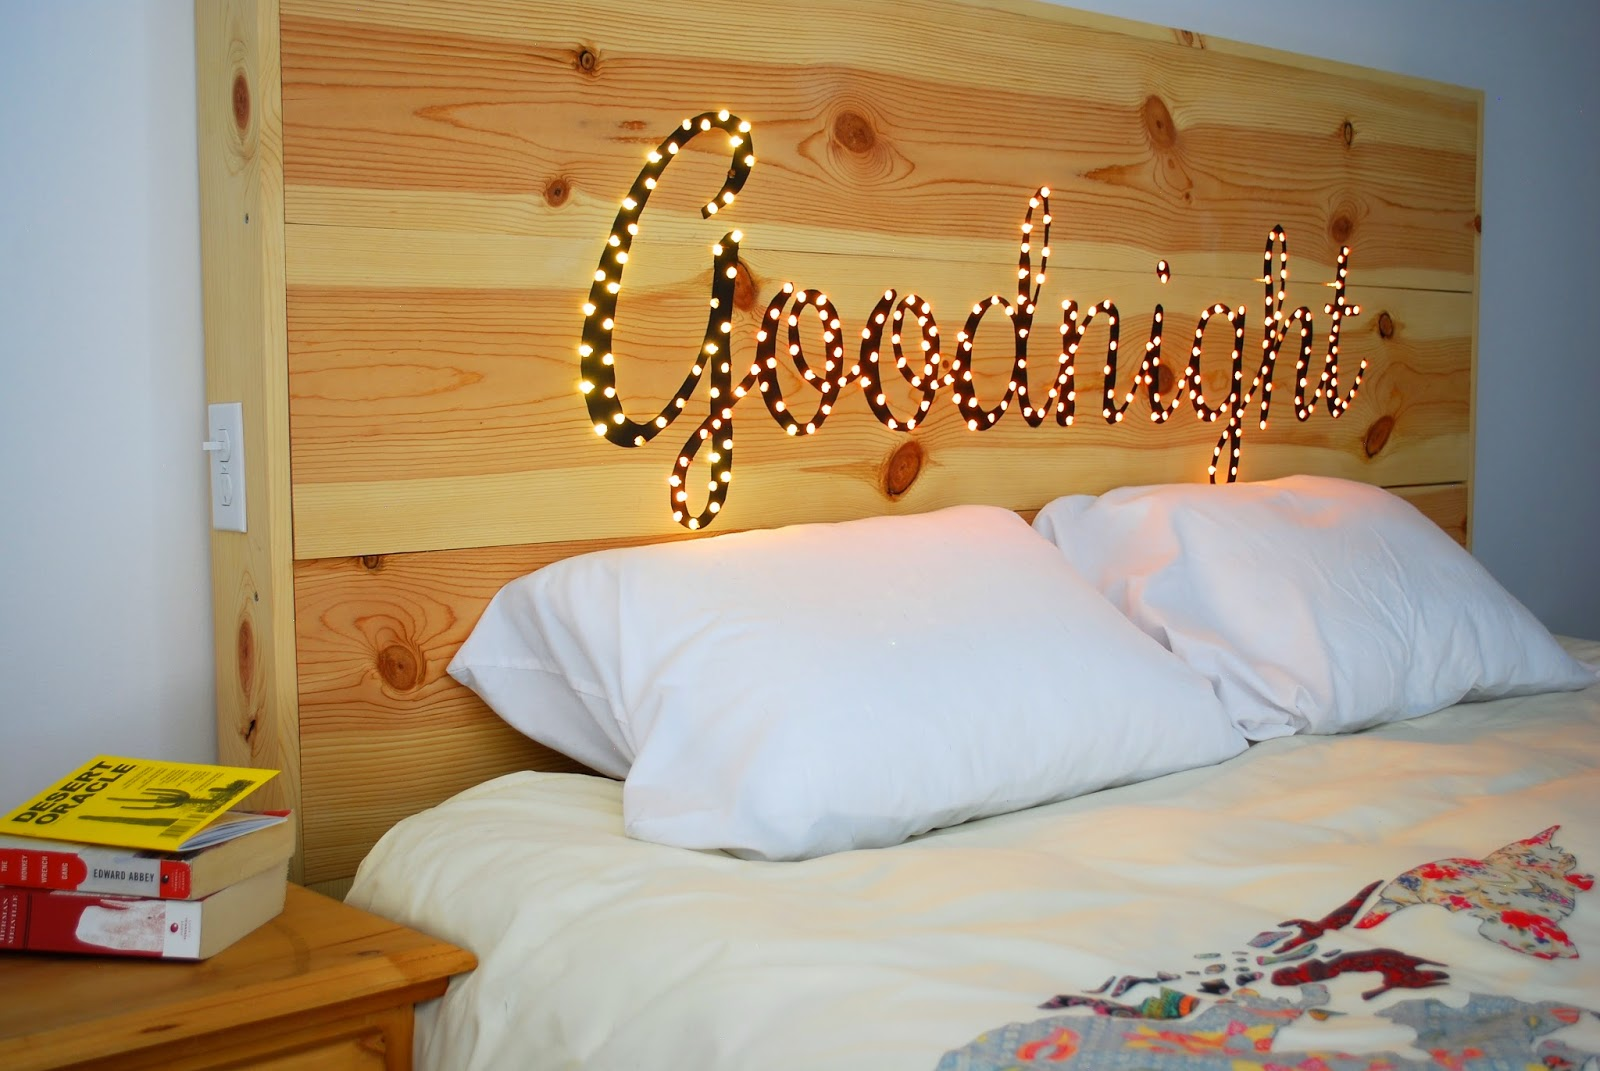 25 cheap and chic diy headboard ideas Headboard with pictures